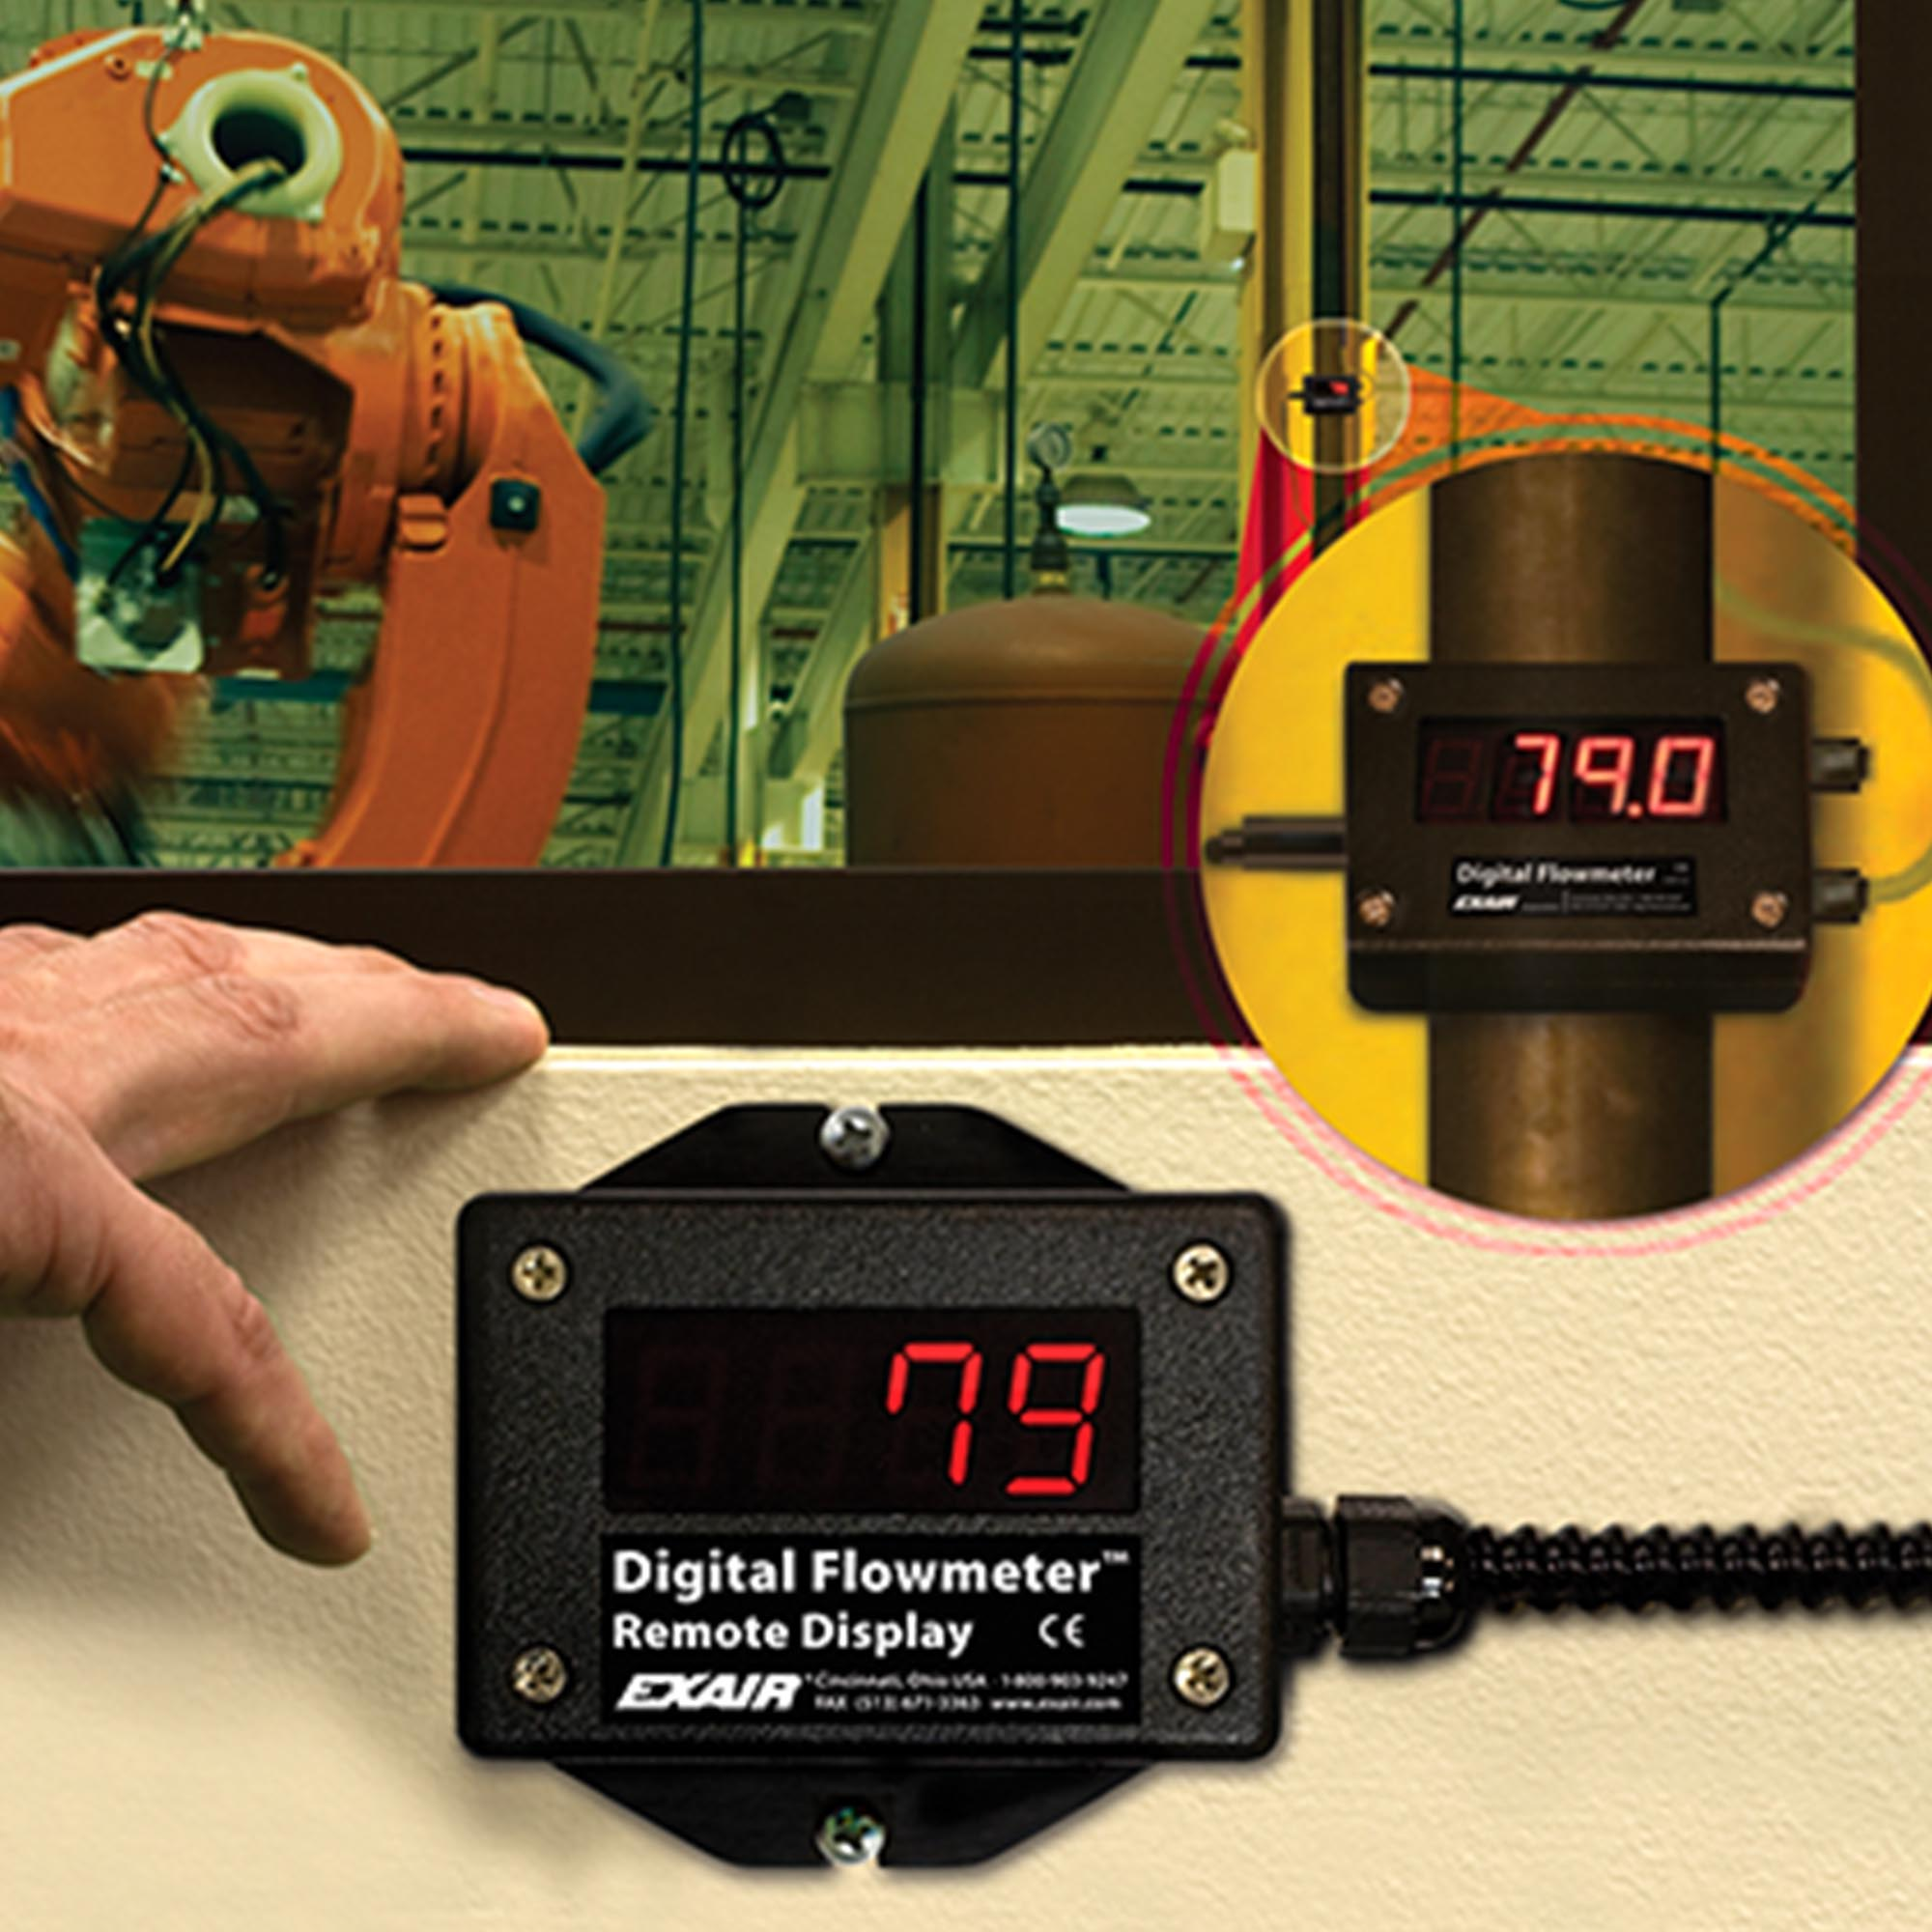 The Summing Remote makes it easy to read flow data from hard-to-reach areas.